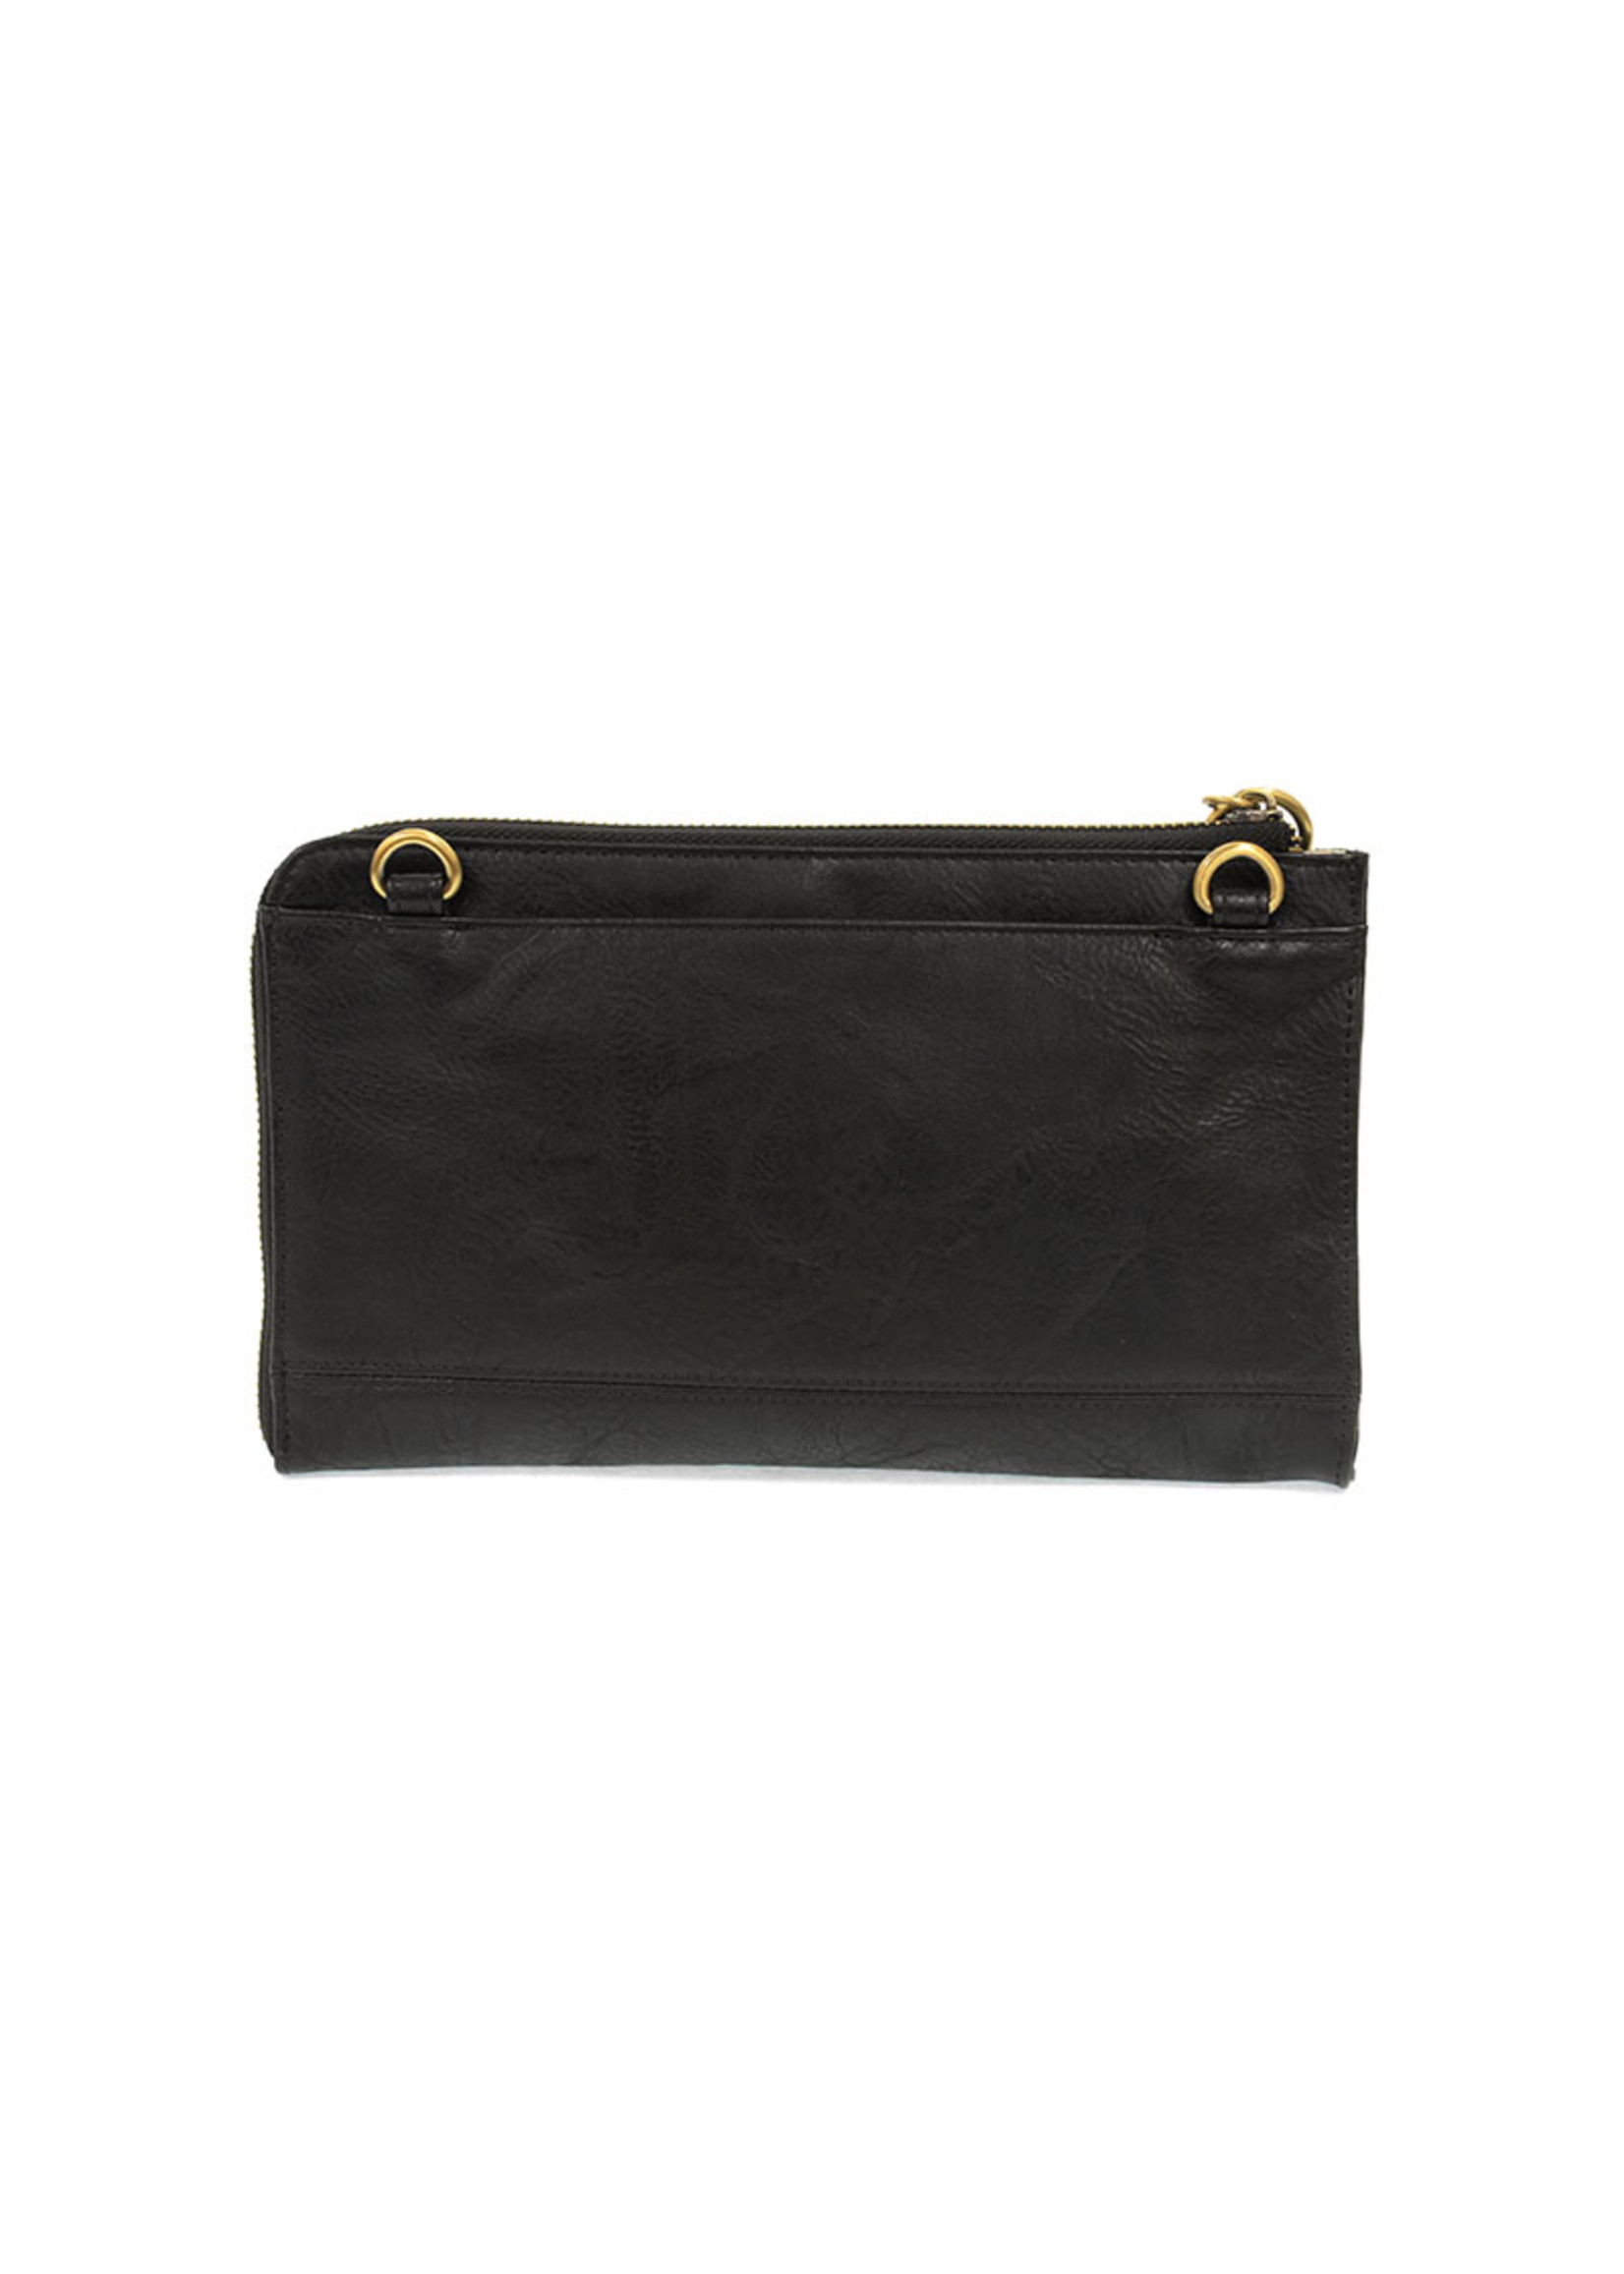 joy susan Karina Convertible Wristlet & Wallet Black